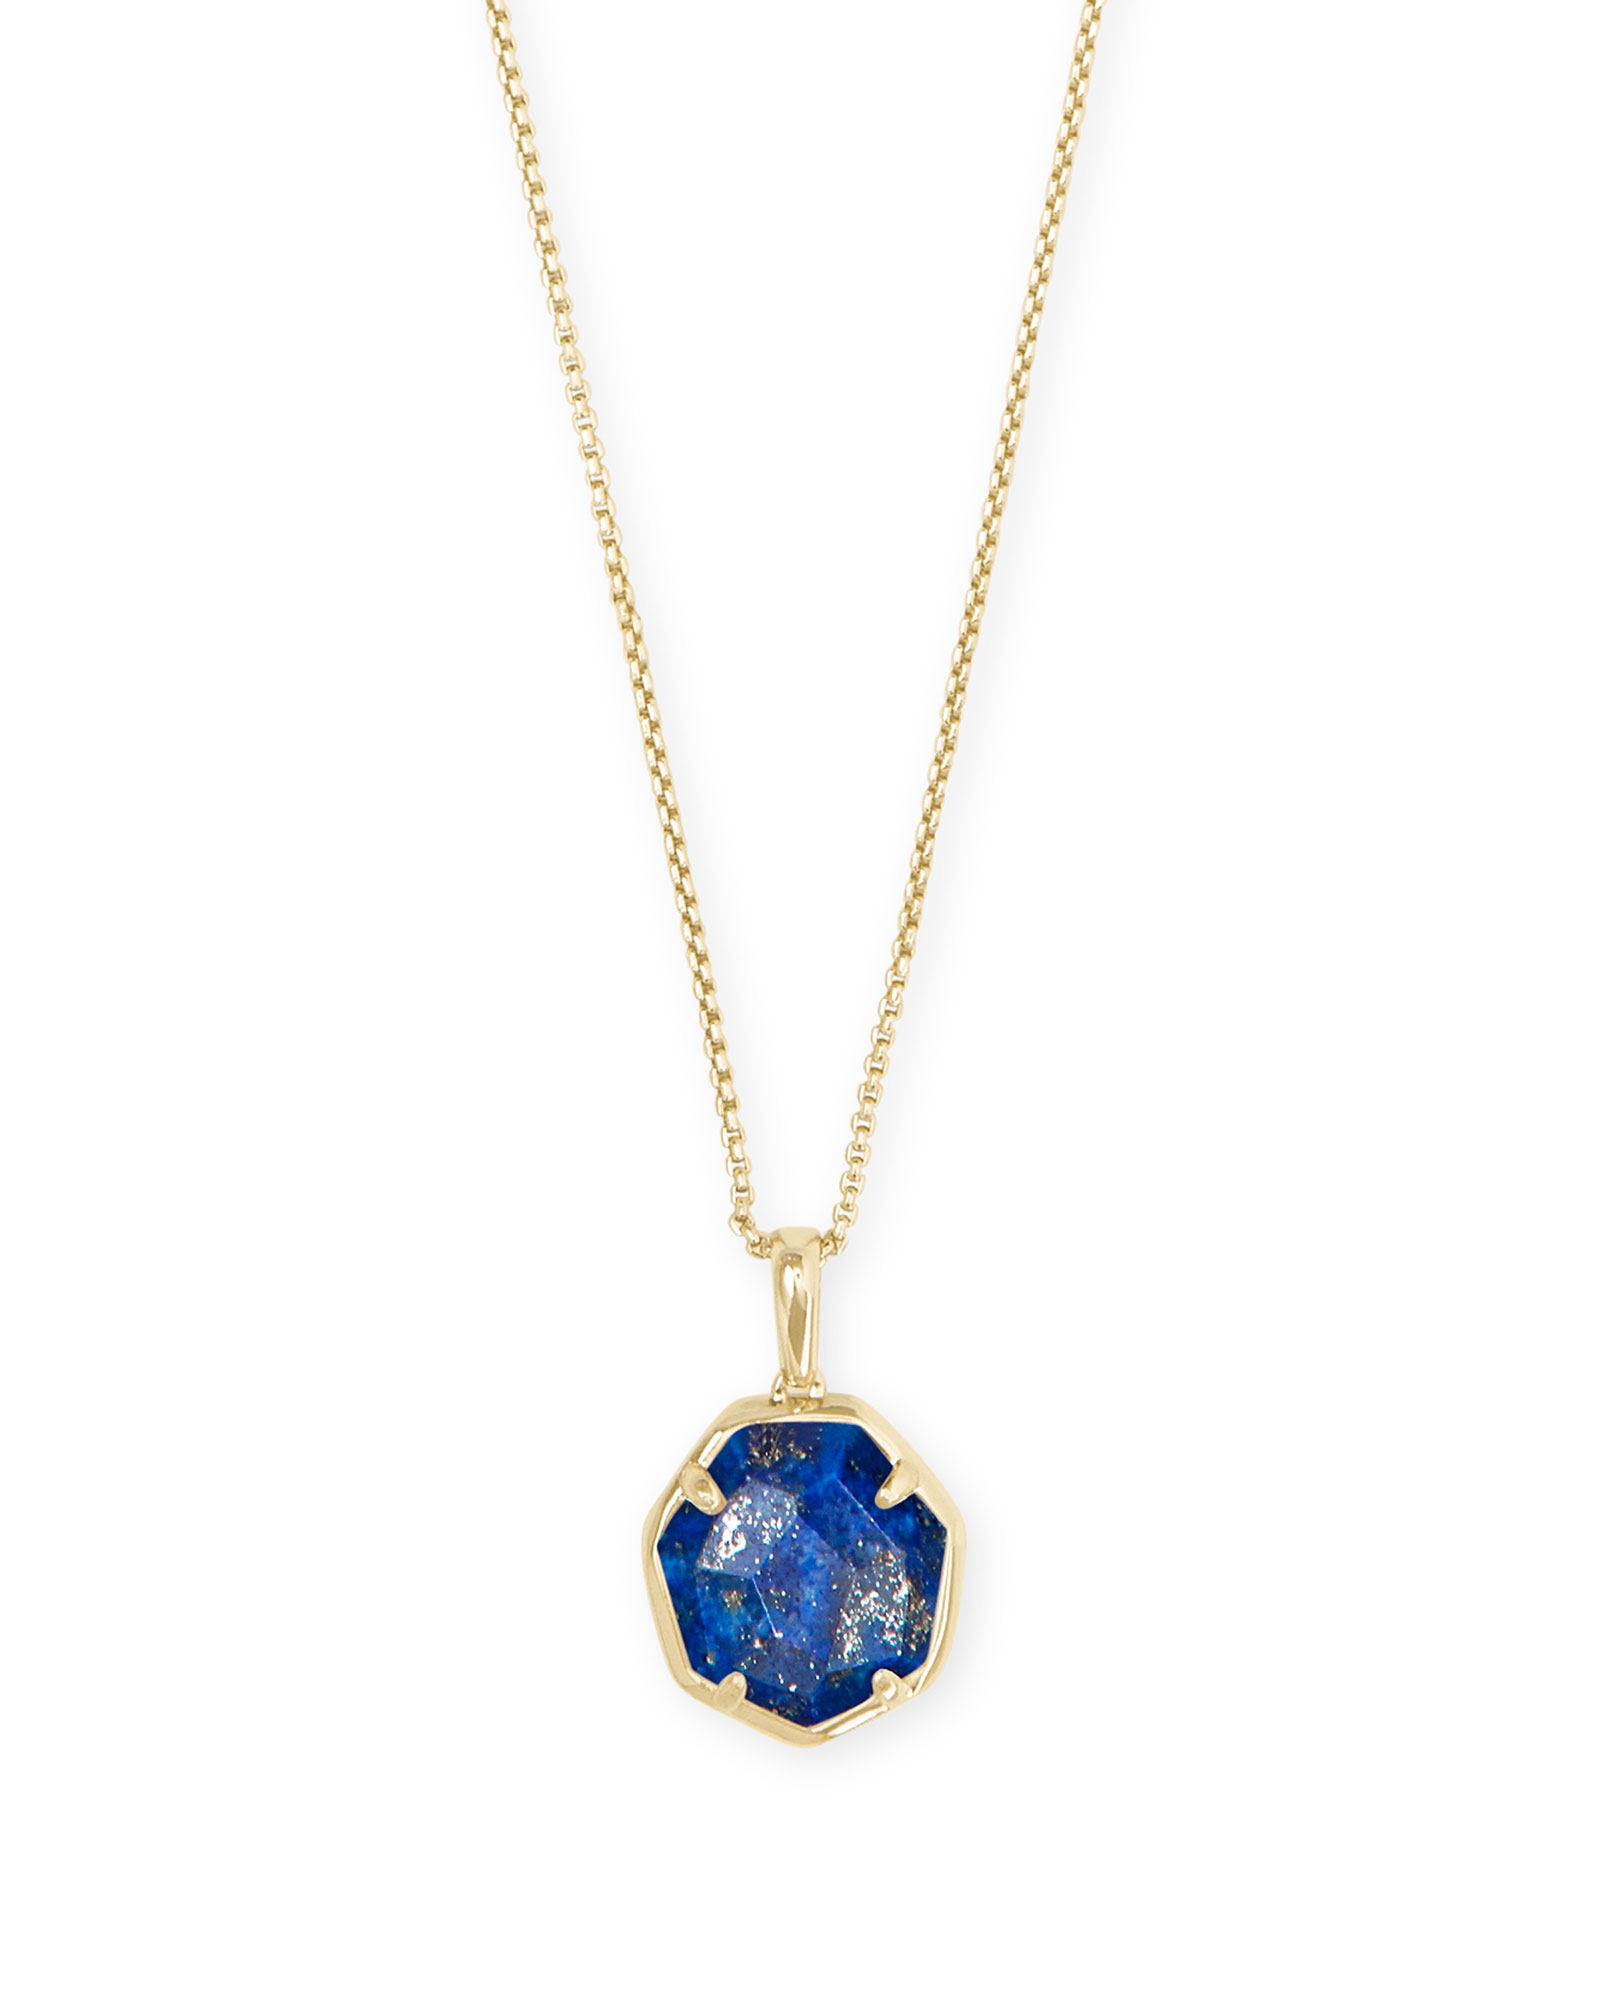 Cynthia Gold Pendant Necklace in Blue Lapis